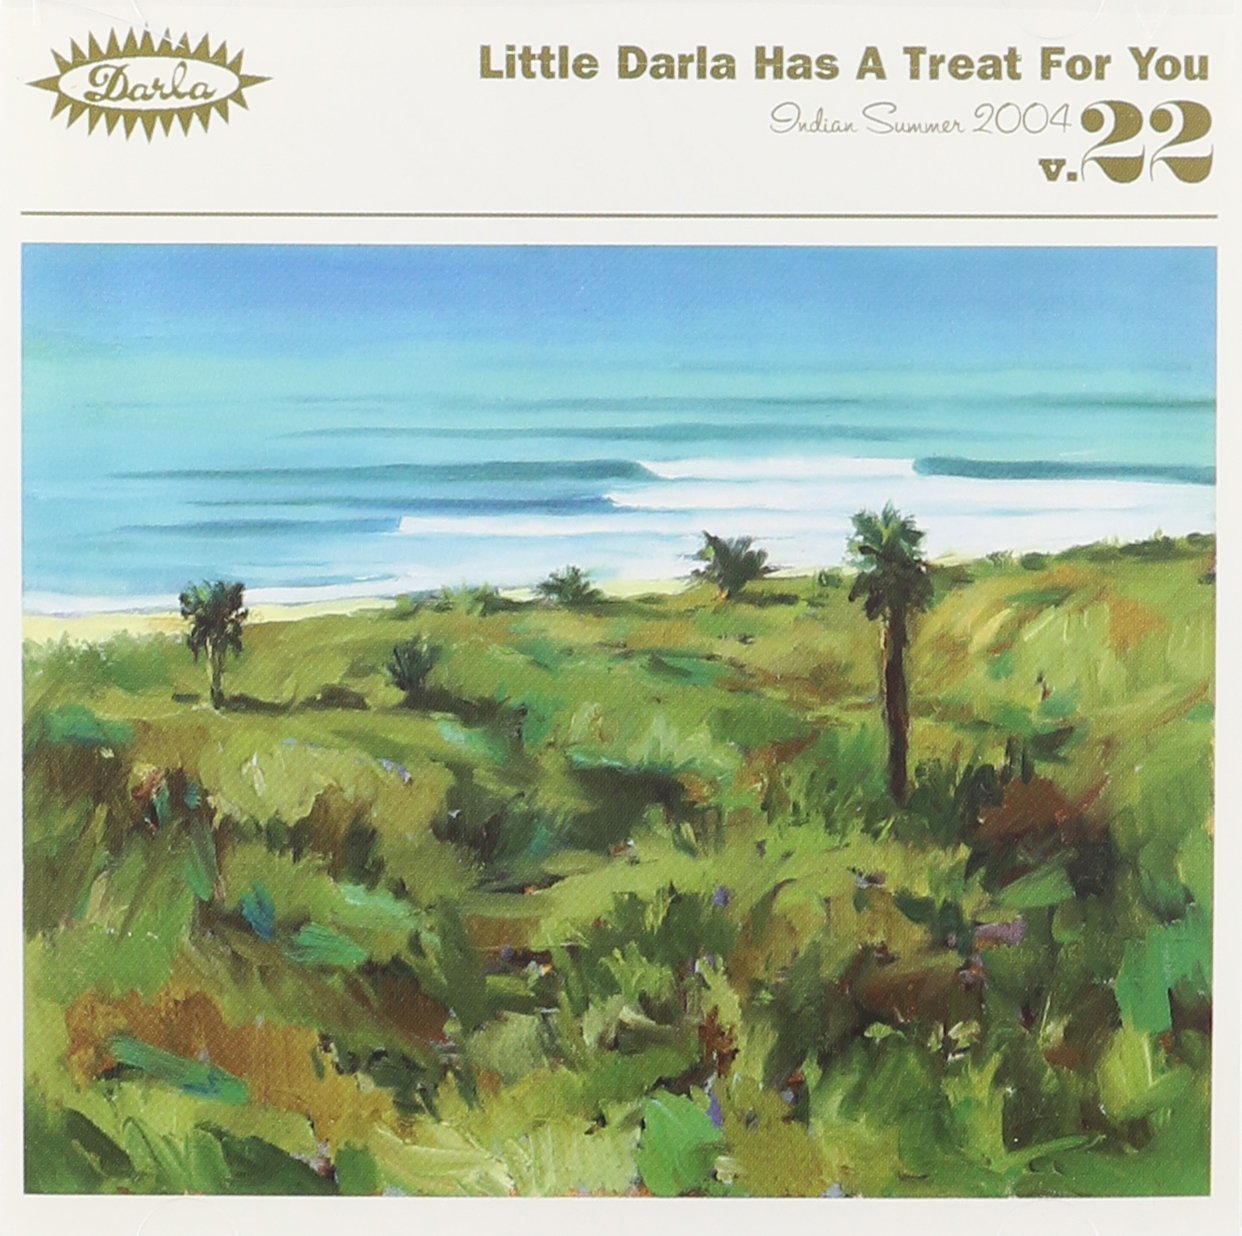 v/a - Little Darla has a Treat for You, Vol. 22, Indian Summer 2004